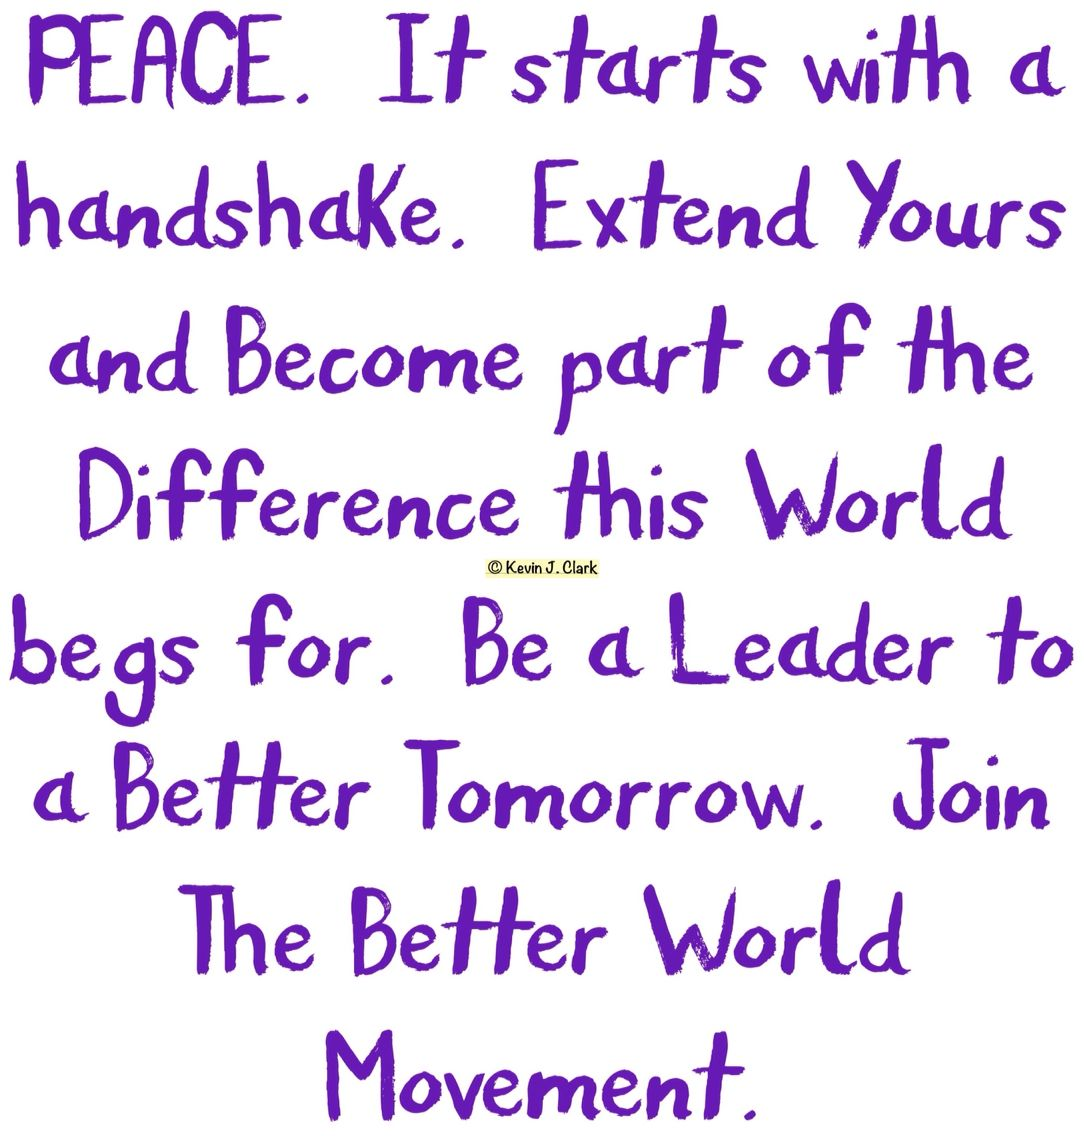 #New #BetterWorld #Design avail in #Etsy #Shop for #DigitalDownload #KJACDesigns https://www.etsy.com/listing/258406635/be-a-leader-better-world-movement #leadership #motivational #Inspirational #Inspiring #Dreams #dreamers #Success #BeALeader #newquotes #newdesigns #newarrivals #christmas #holidaygifts #holidays #etsylove #Etsymntt #etsyfinds #EtsyGifts #EtsySuccess #etsyshops #etsyusa #gifts #giftideas